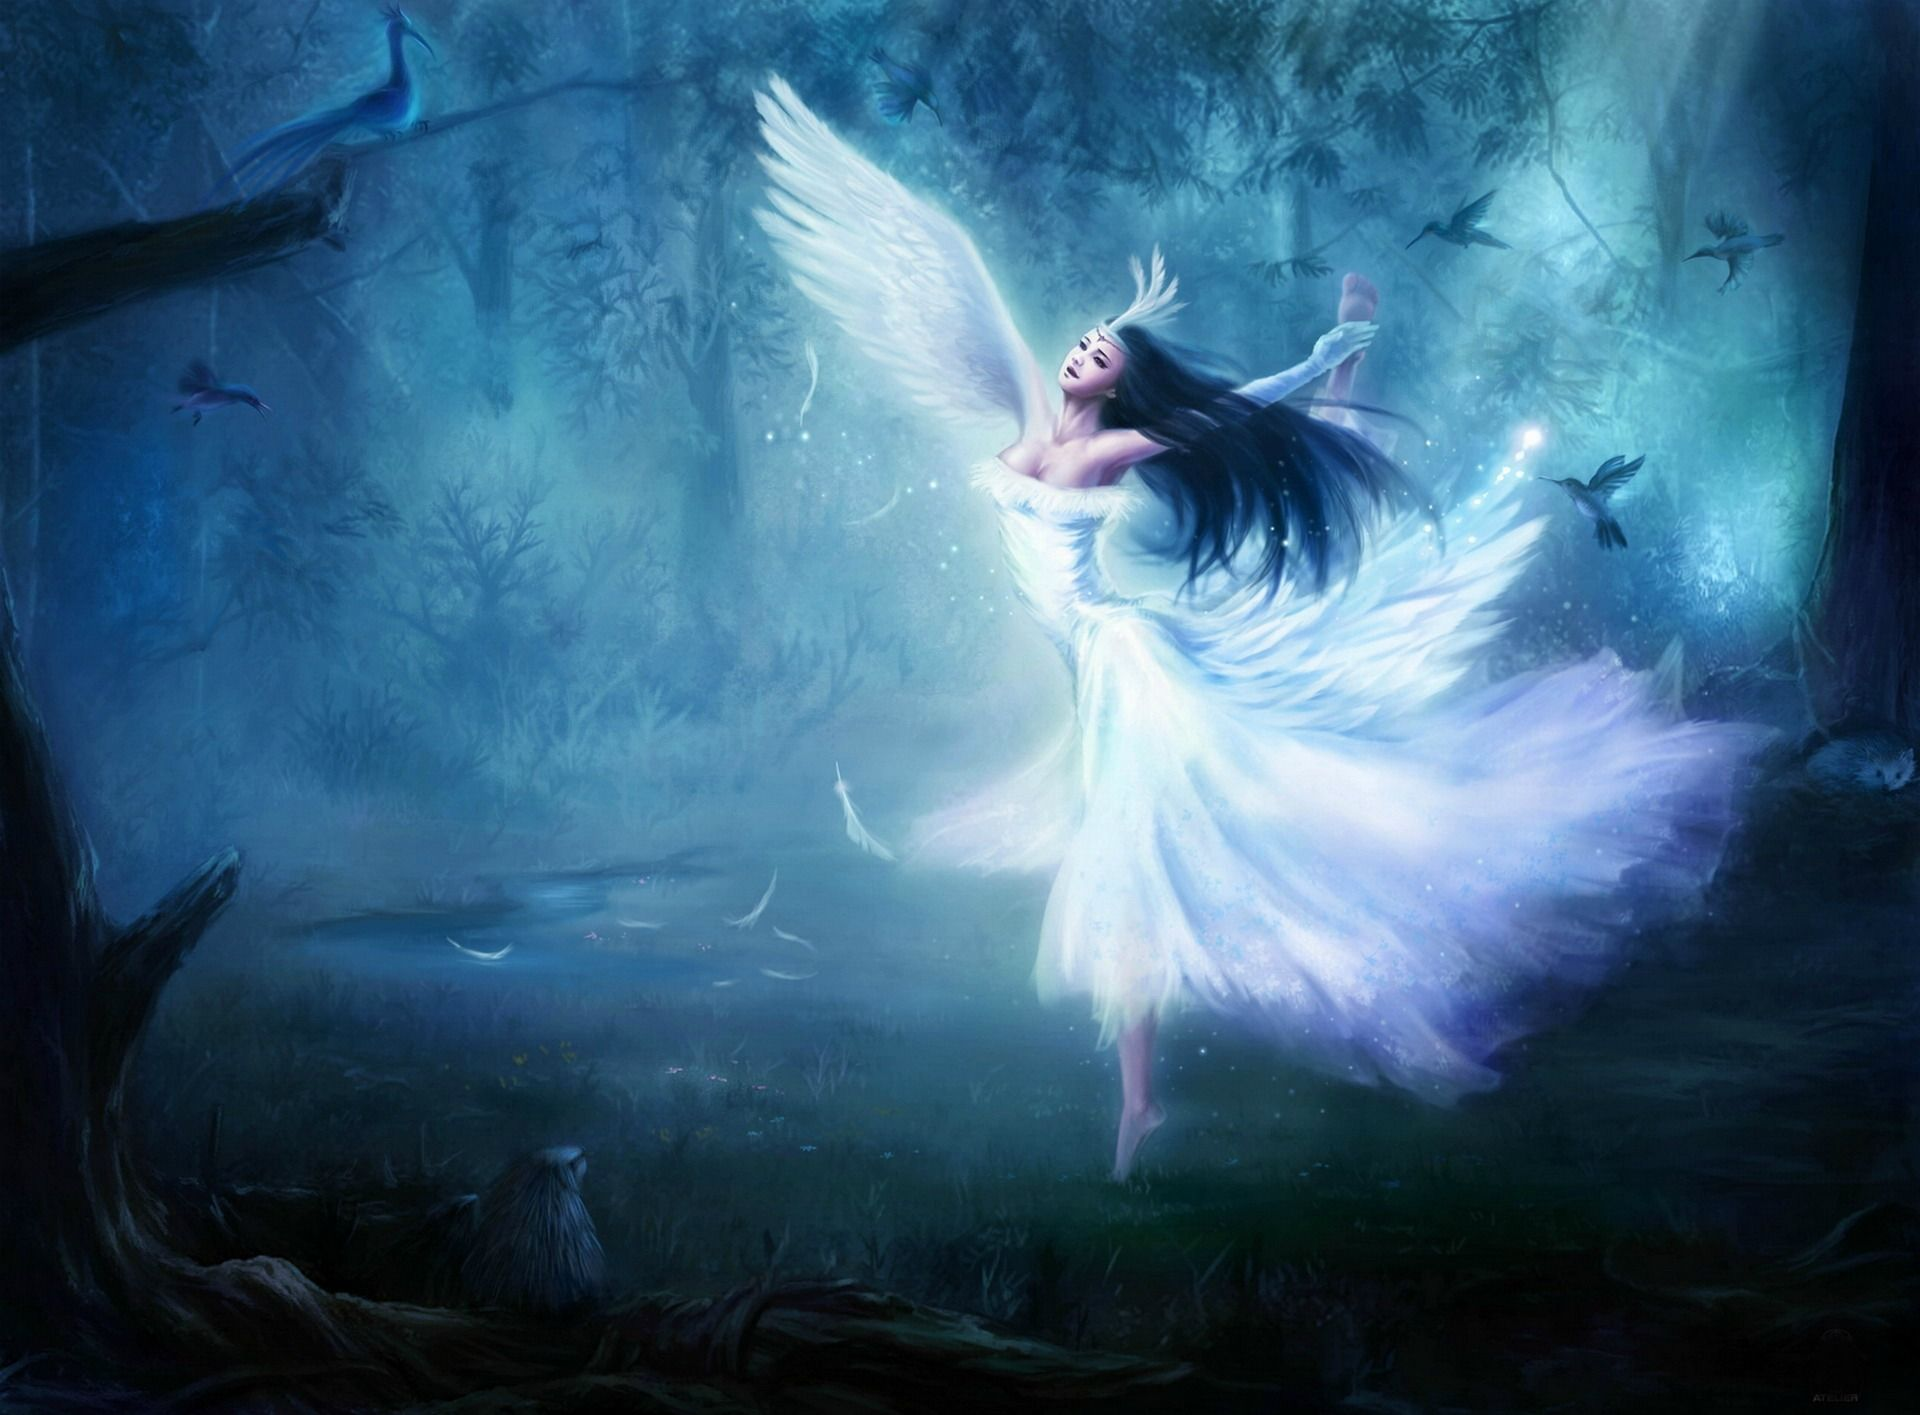 Pin on Fantasy Mystical and Magical 1920x1415